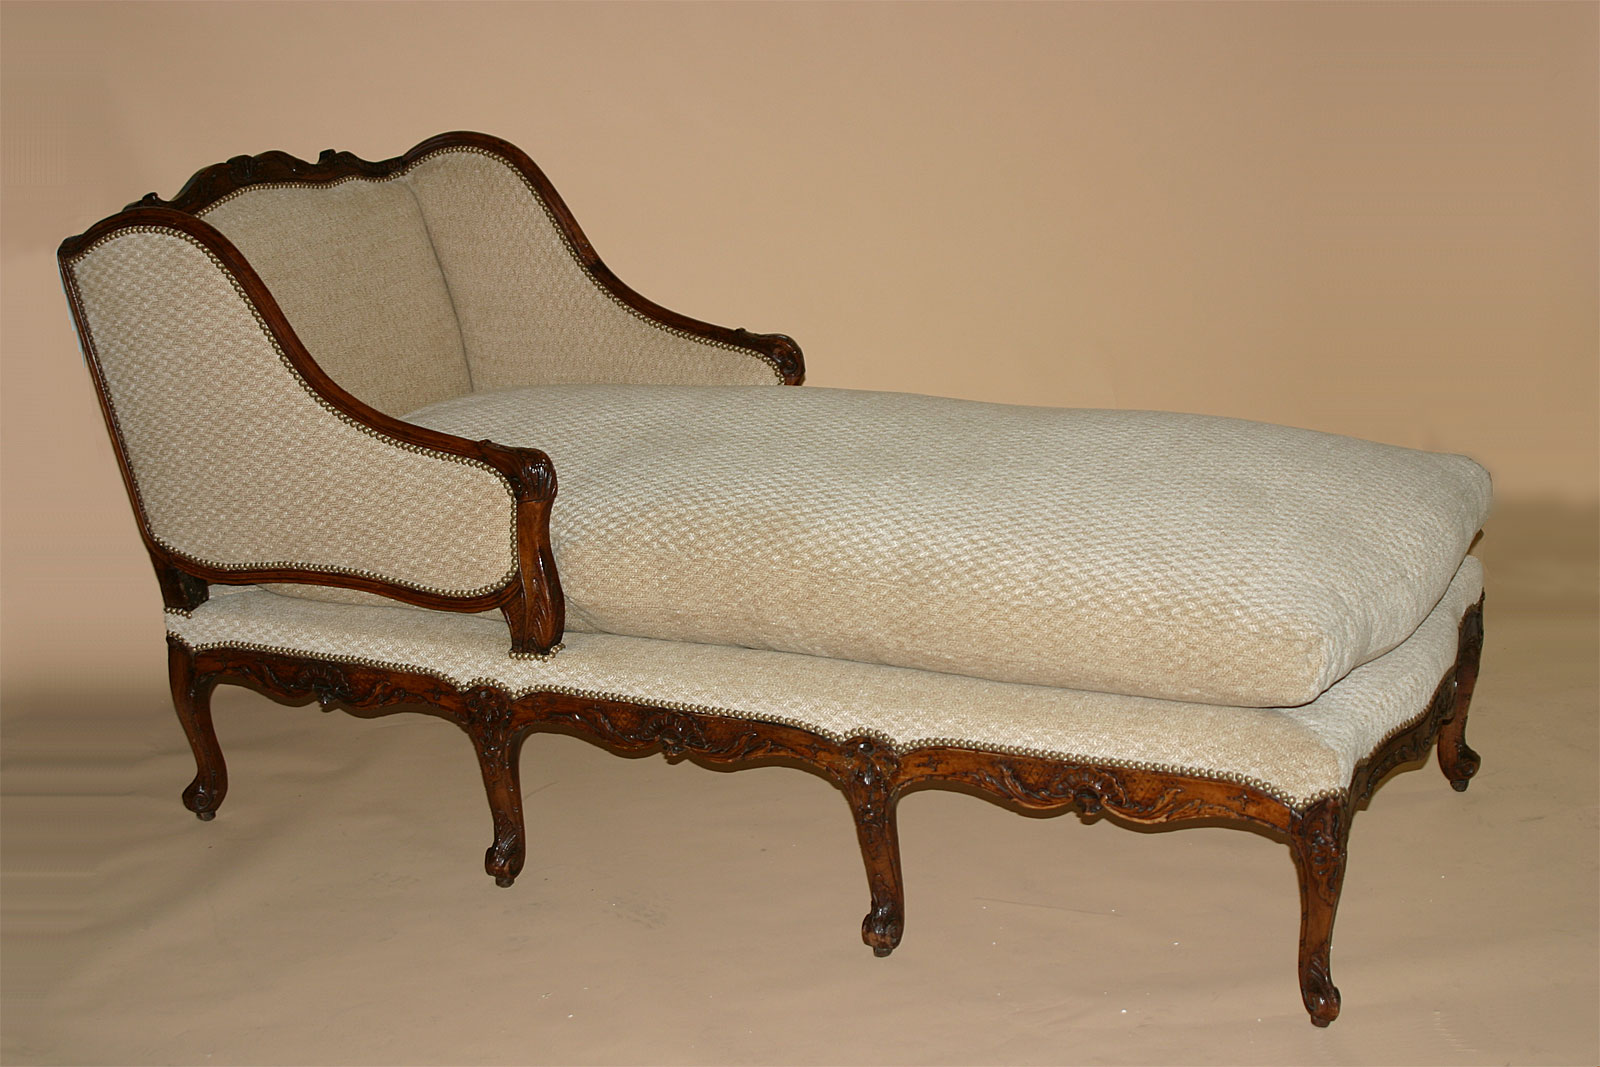 French louis xv period chaise longue for sale antiques for Antique chaise longue for sale